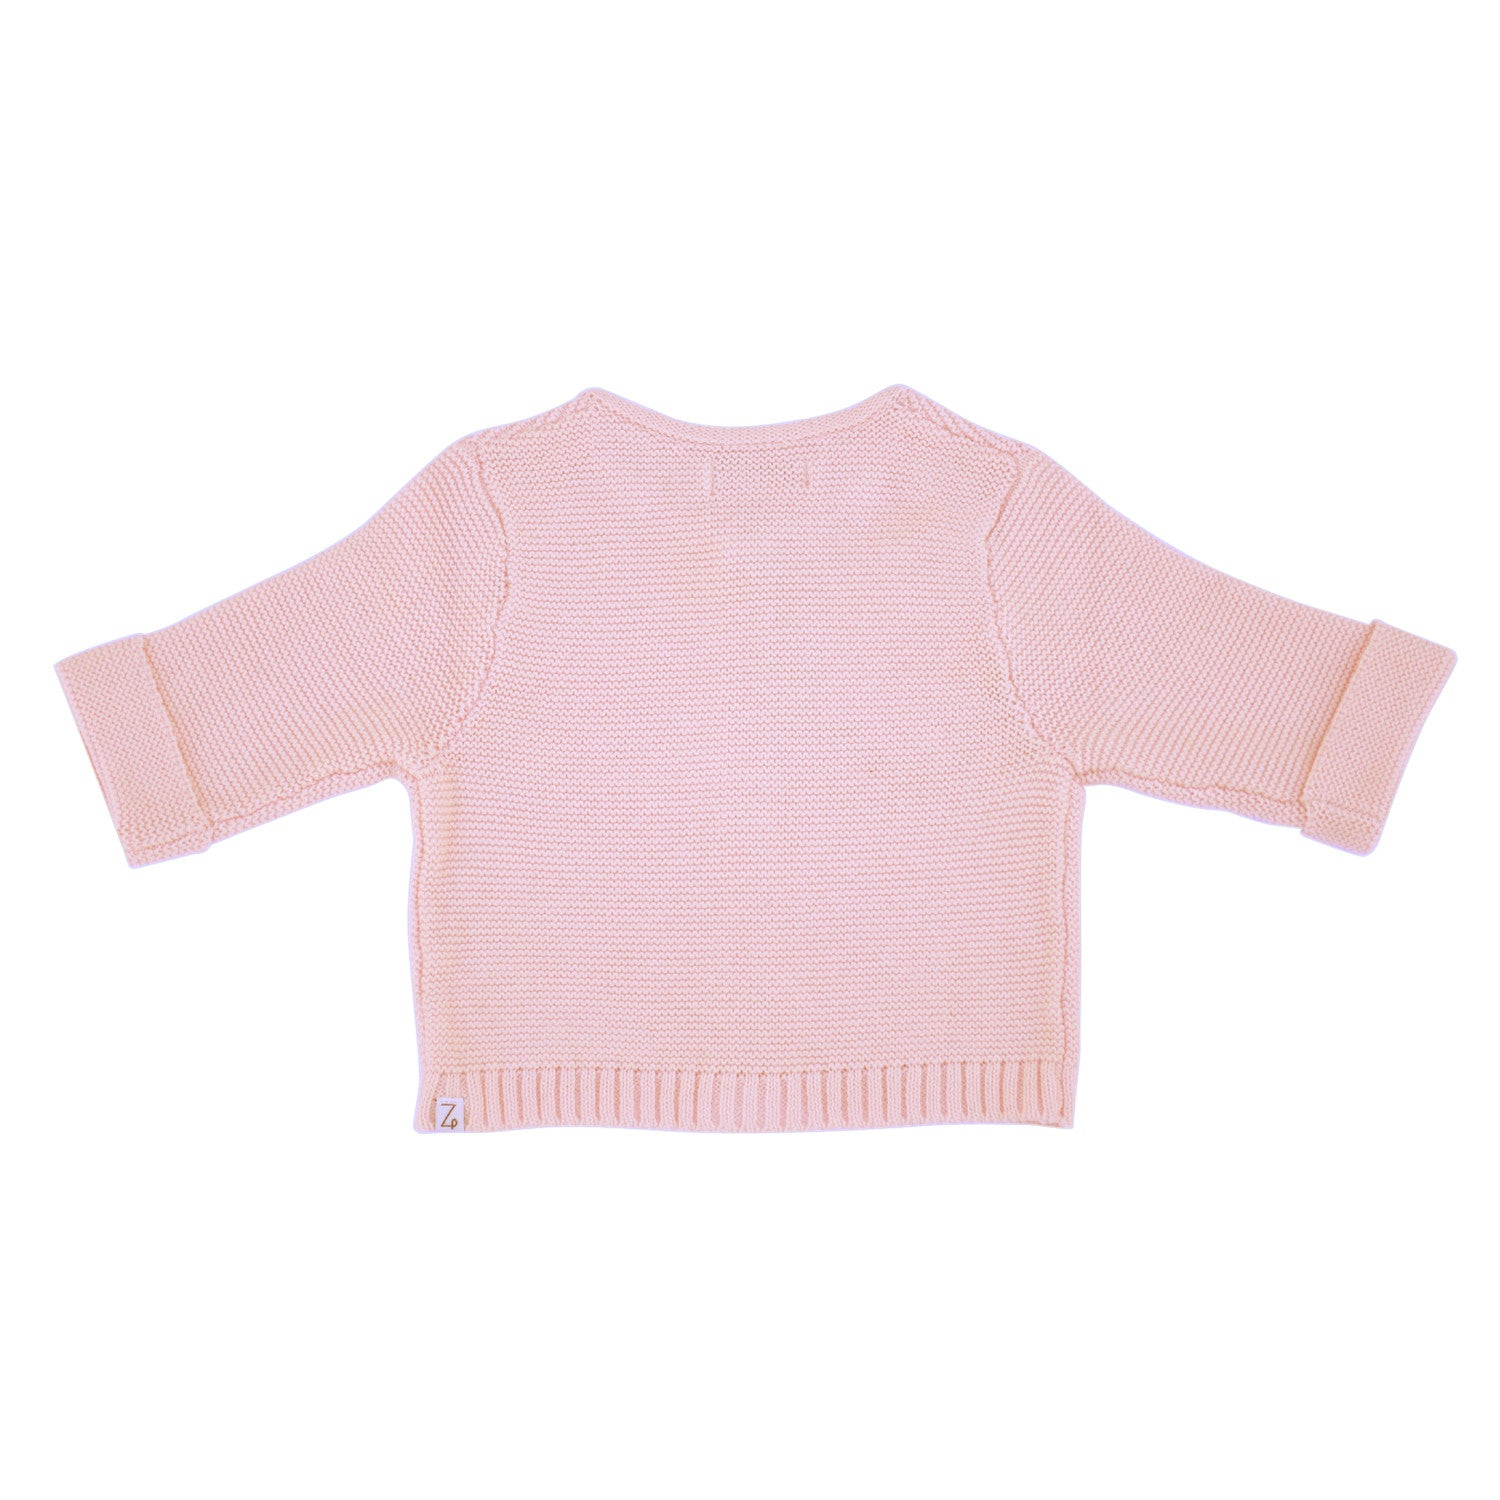 baby set cardigan pink back